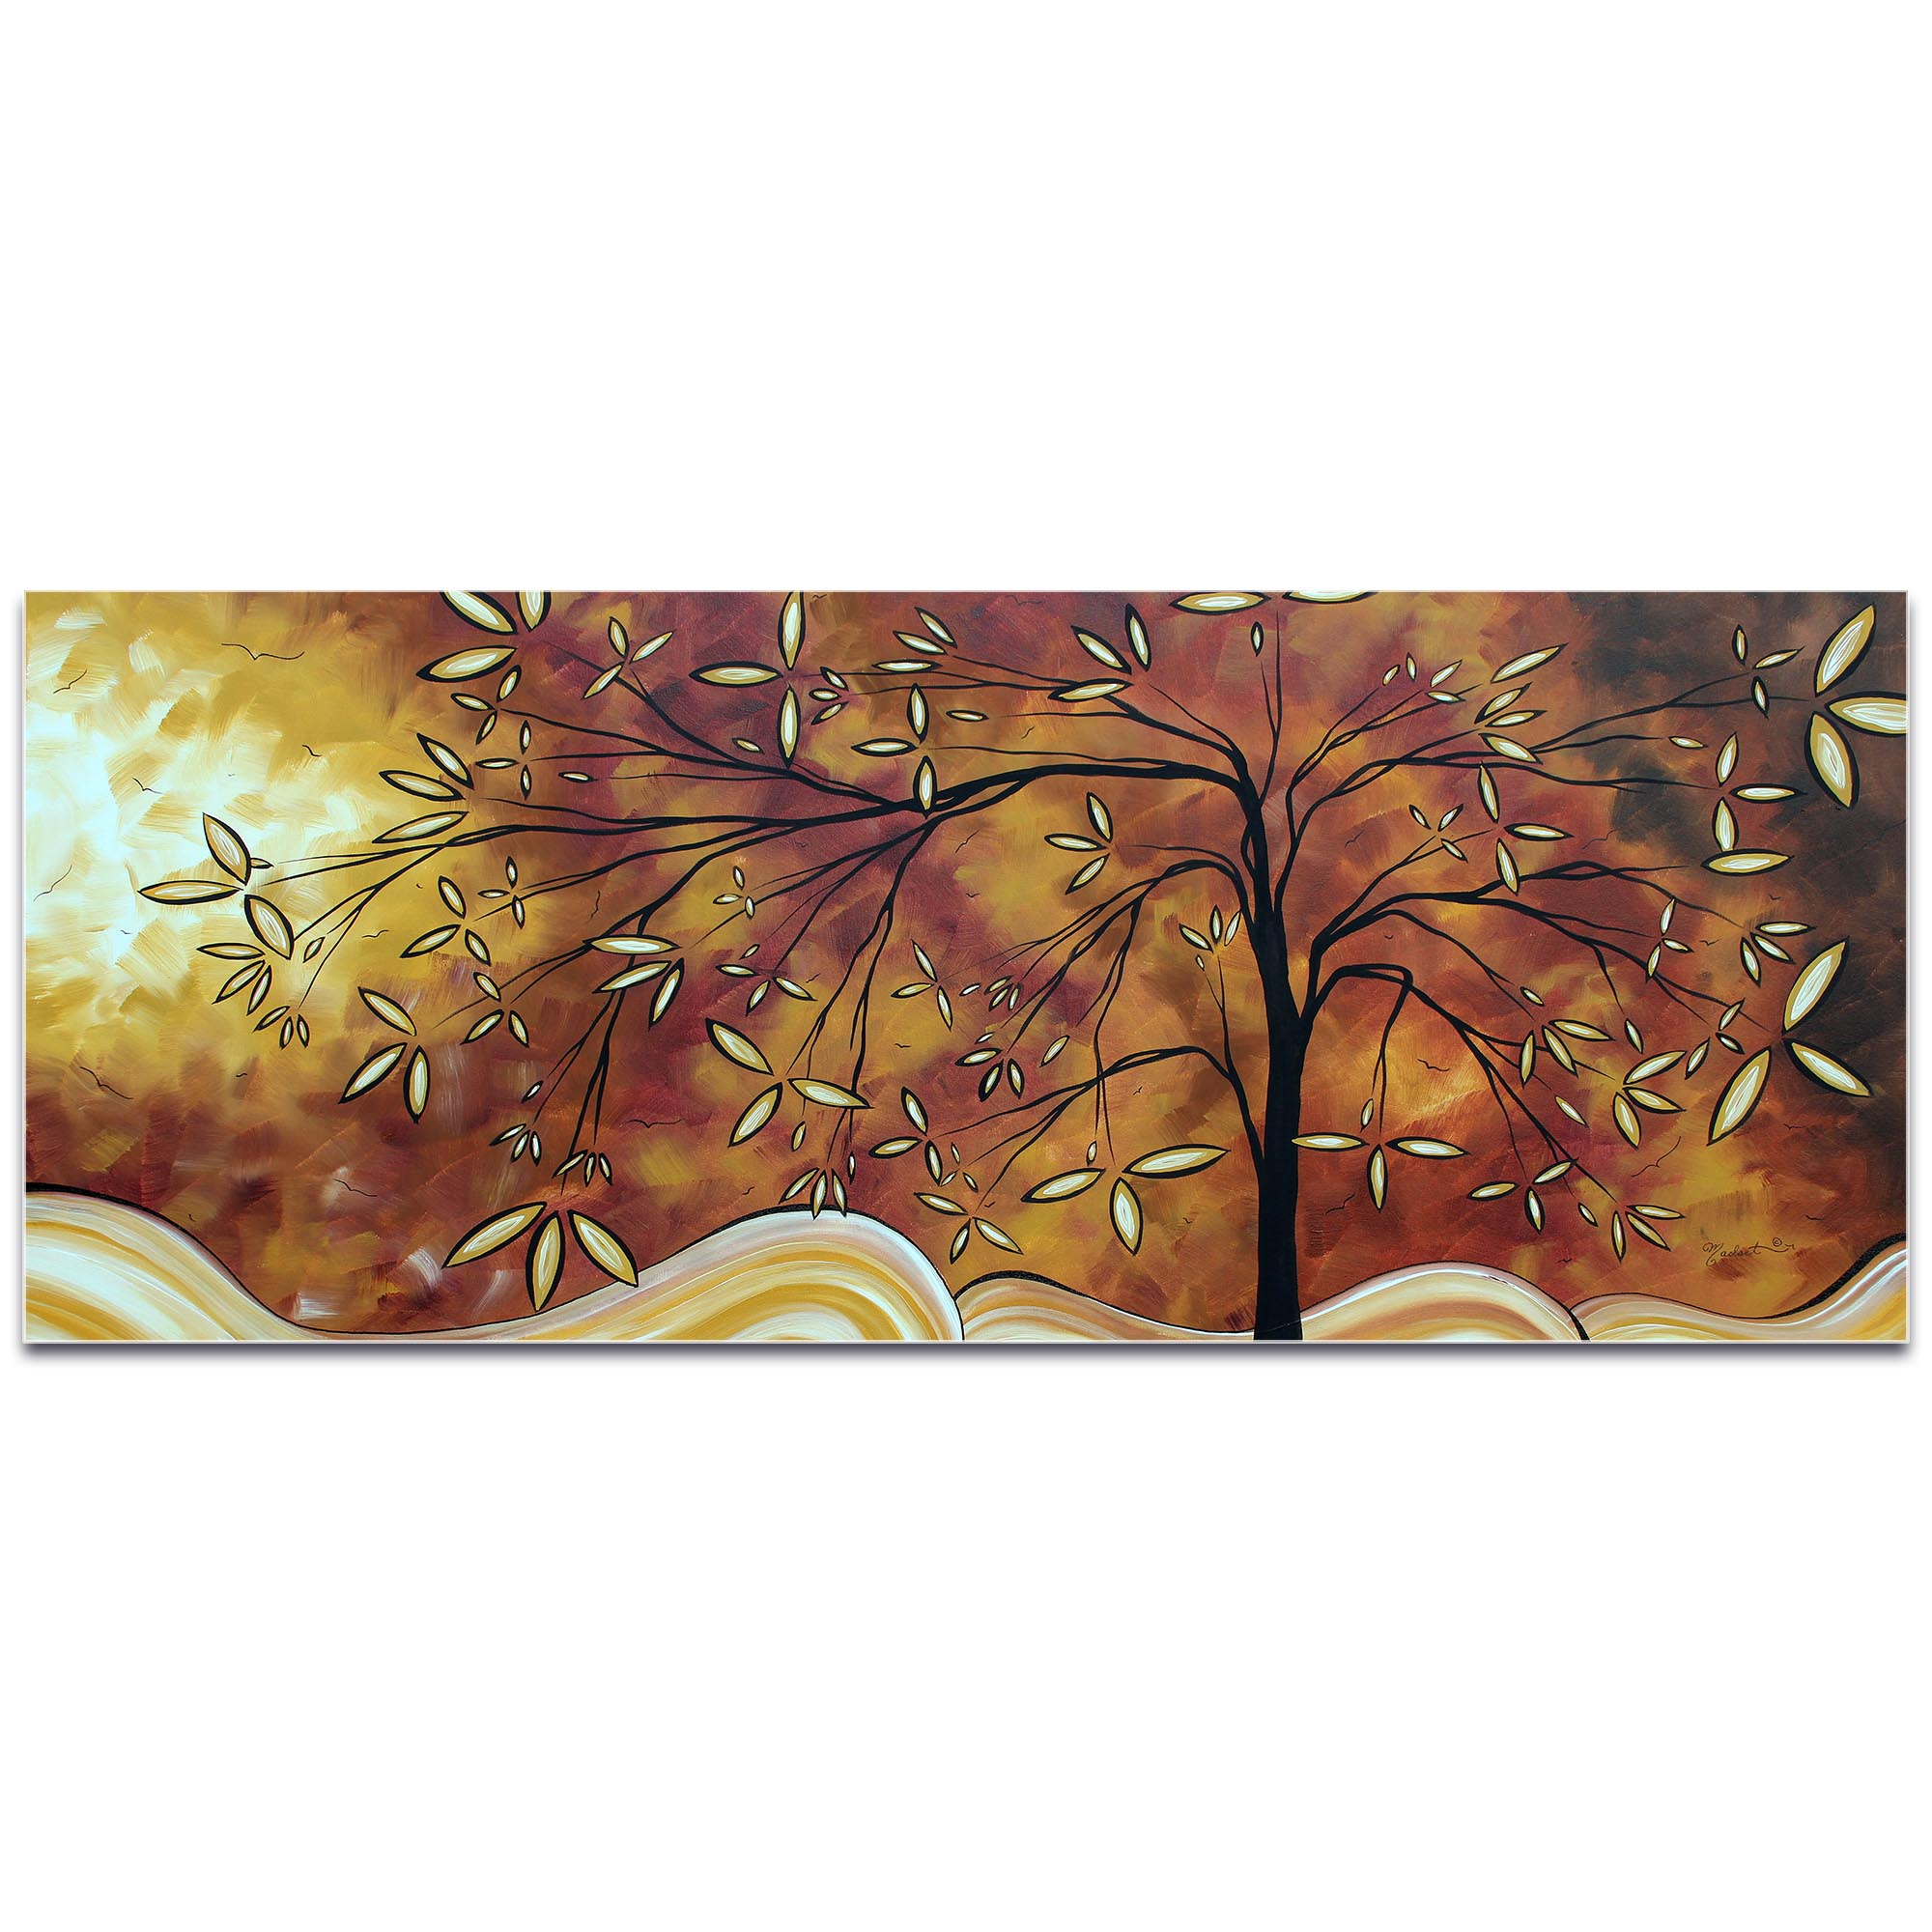 Landscape Painting 'The Wishing Tree' - Abstract Tree Art on Metal or Acrylic - Image 2